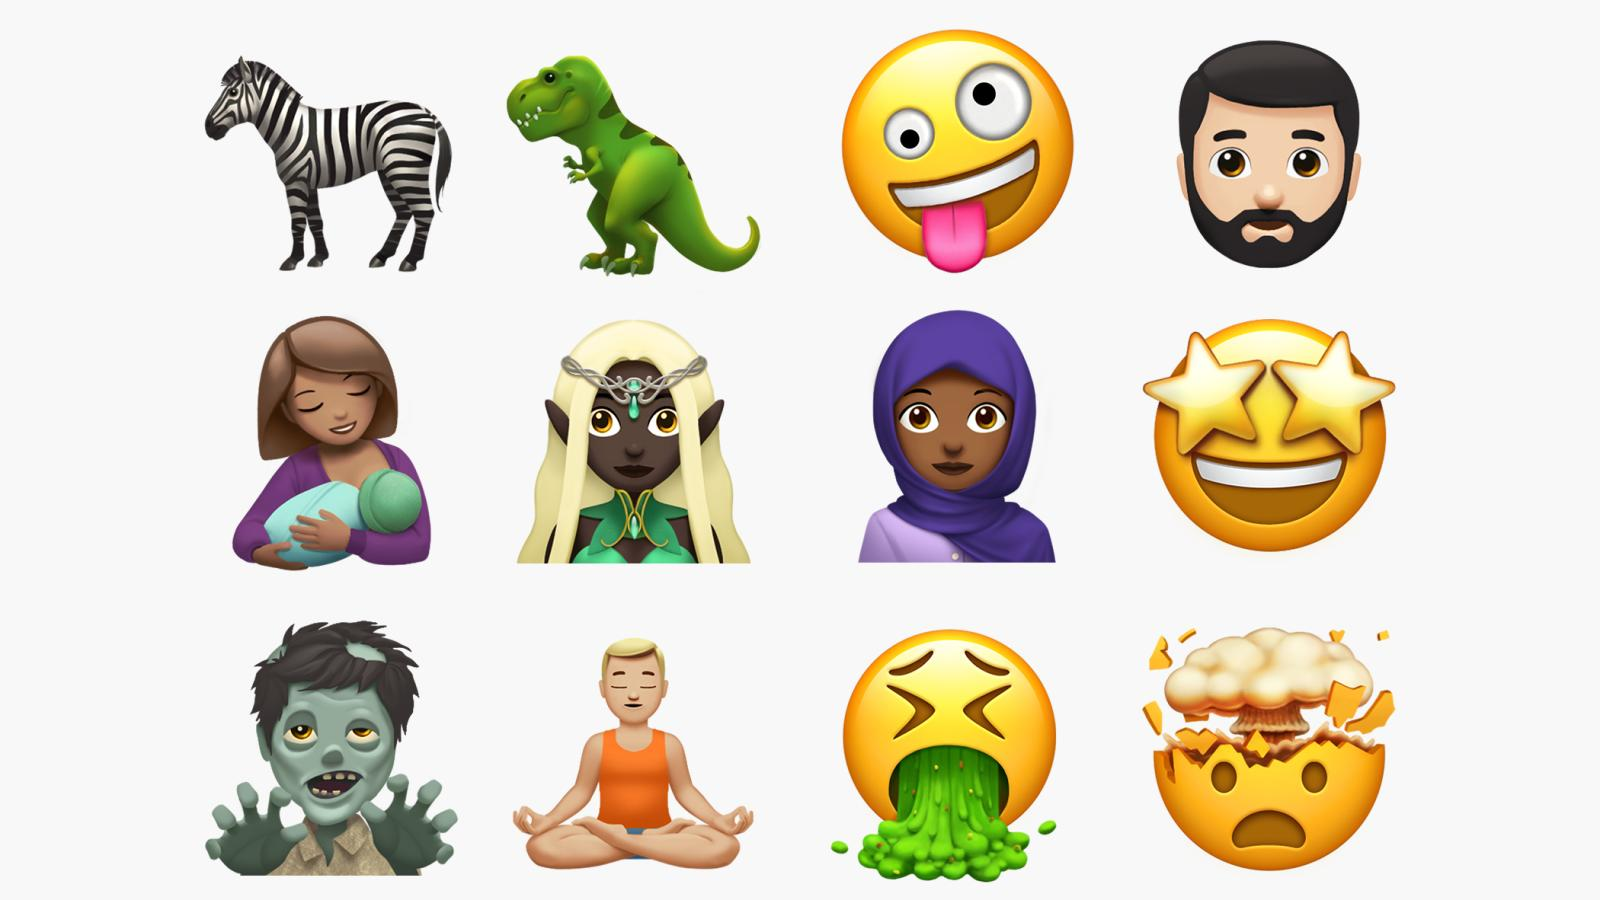 Zombies And Vomit The New Emoji Coming Soon To The Iphone For World Emoji Day Quartz